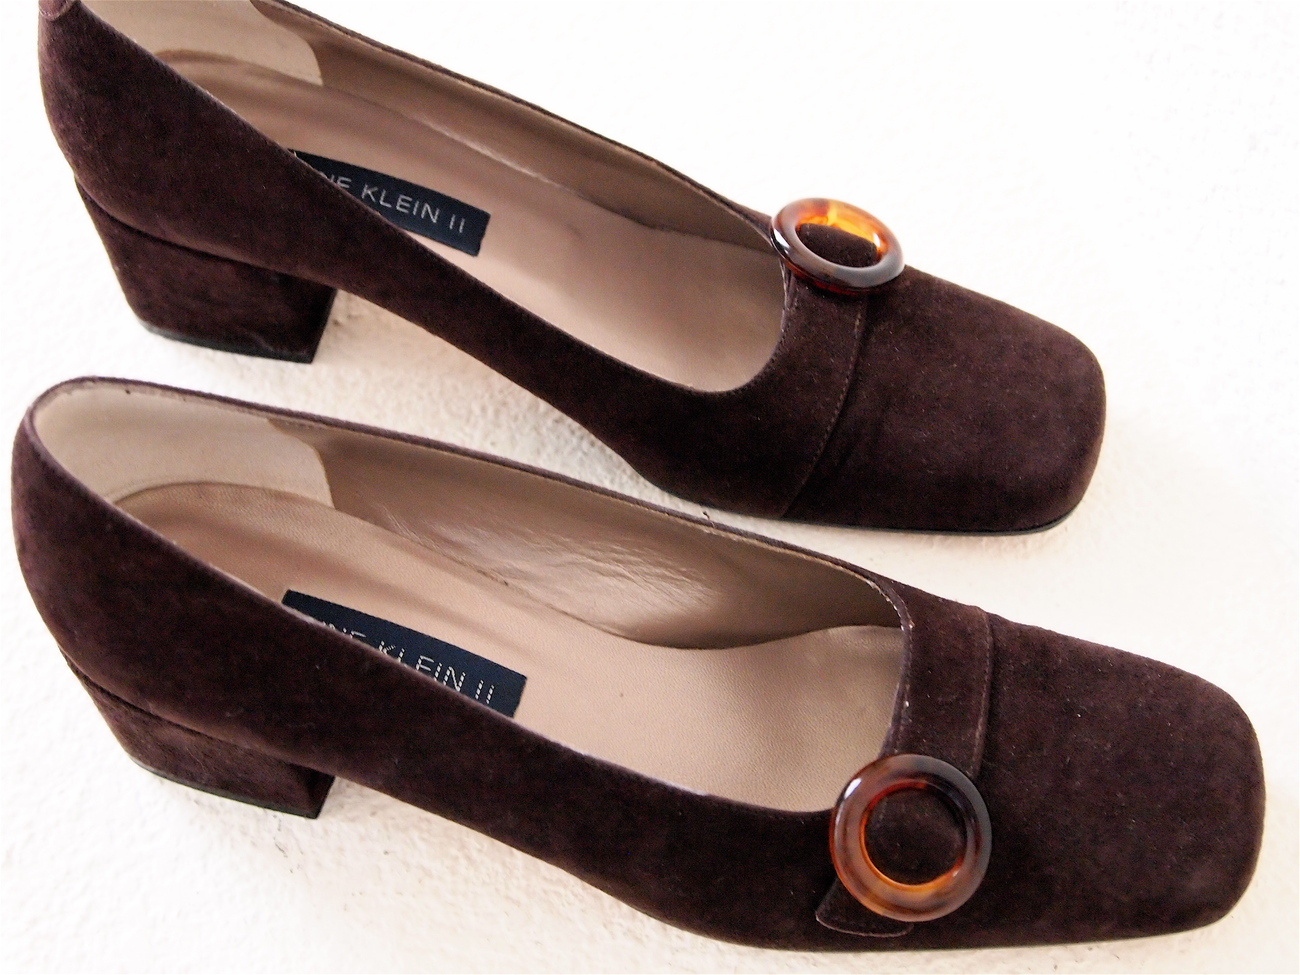 Anne klein II Slip On Pump In Brown Suede 8.5 N